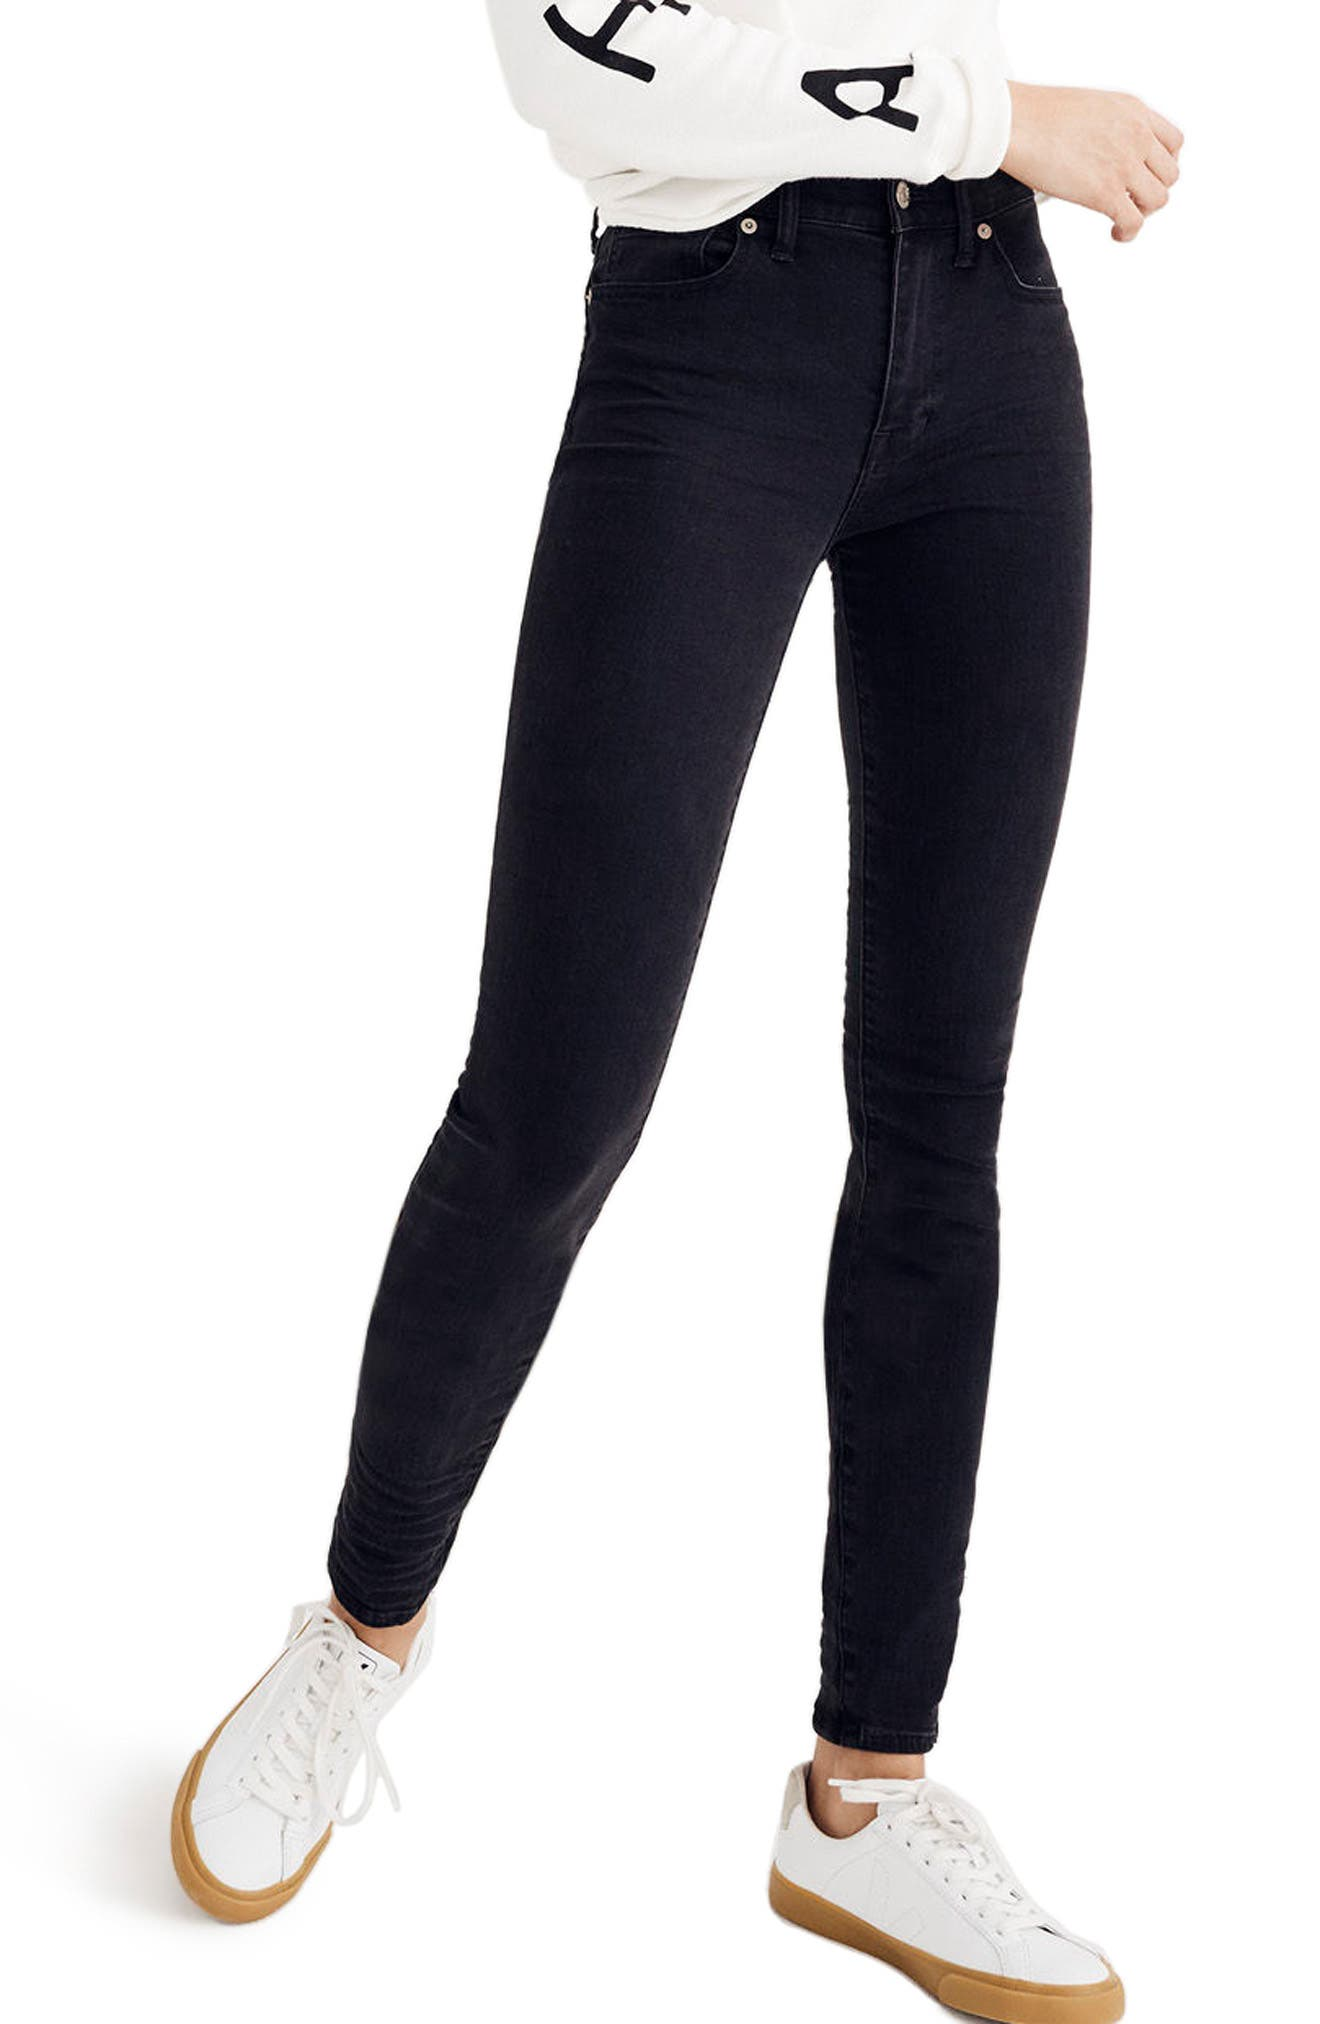 9-Inch High-Rise Skinny Jeans,                         Main,                         color, Lunar